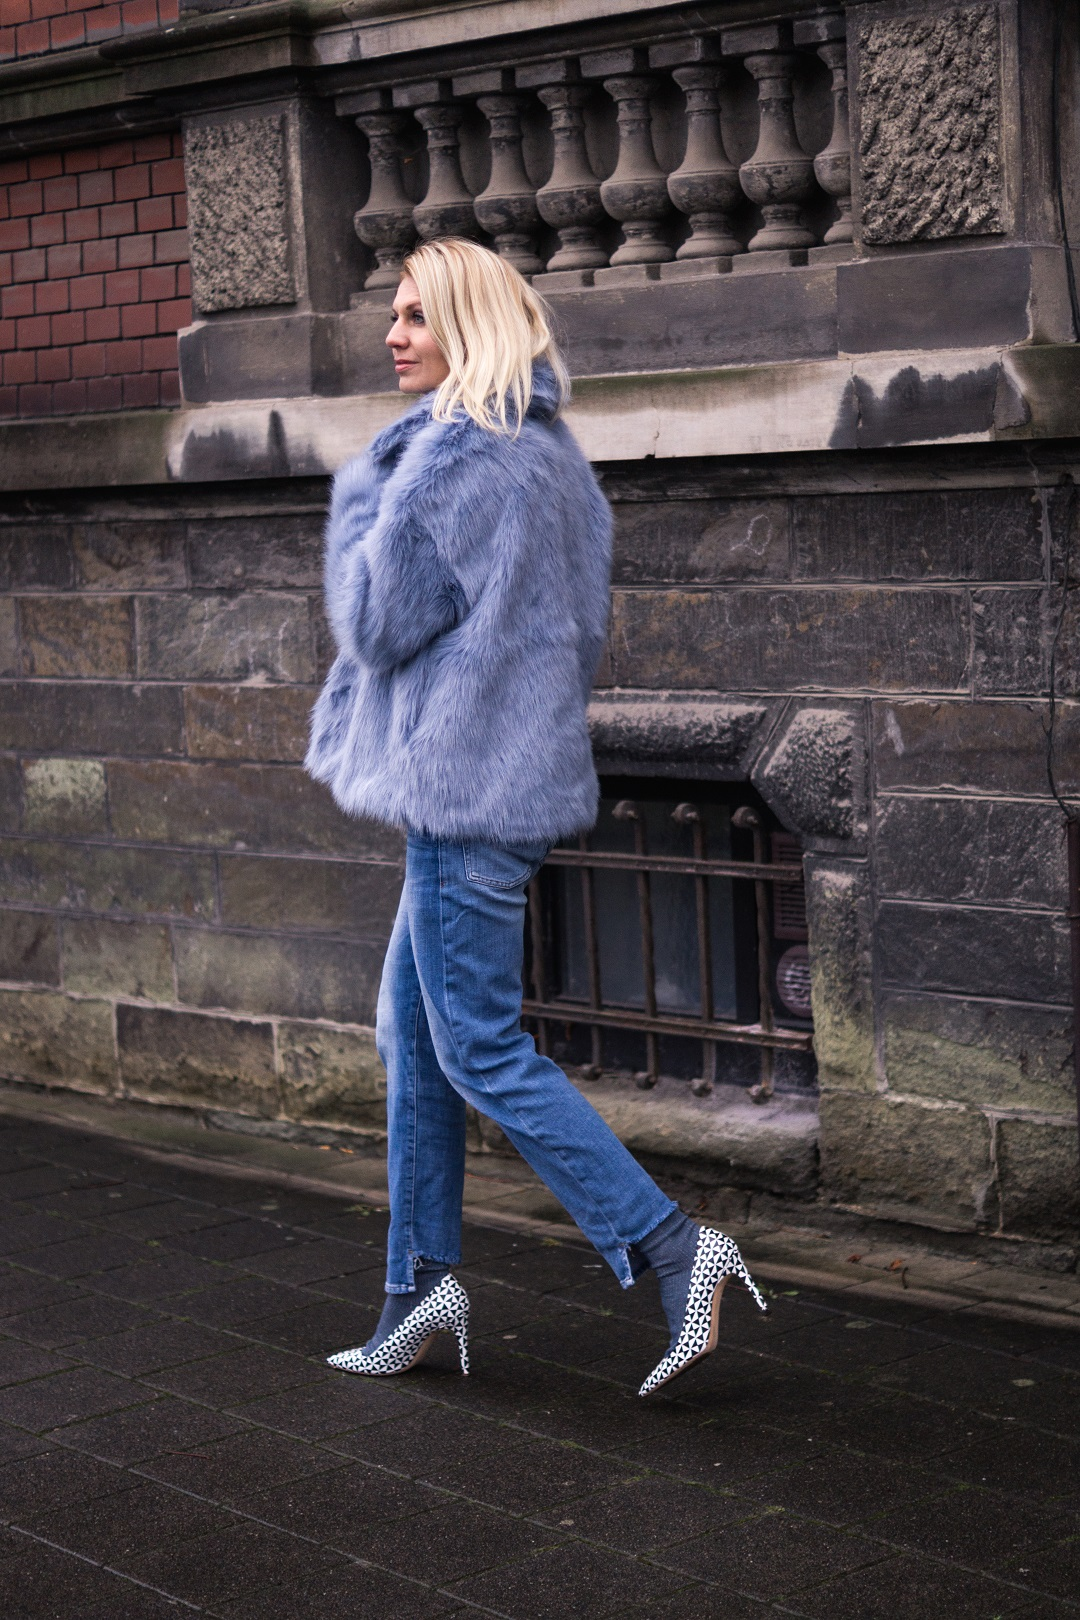 faux-fur jacket and pumps